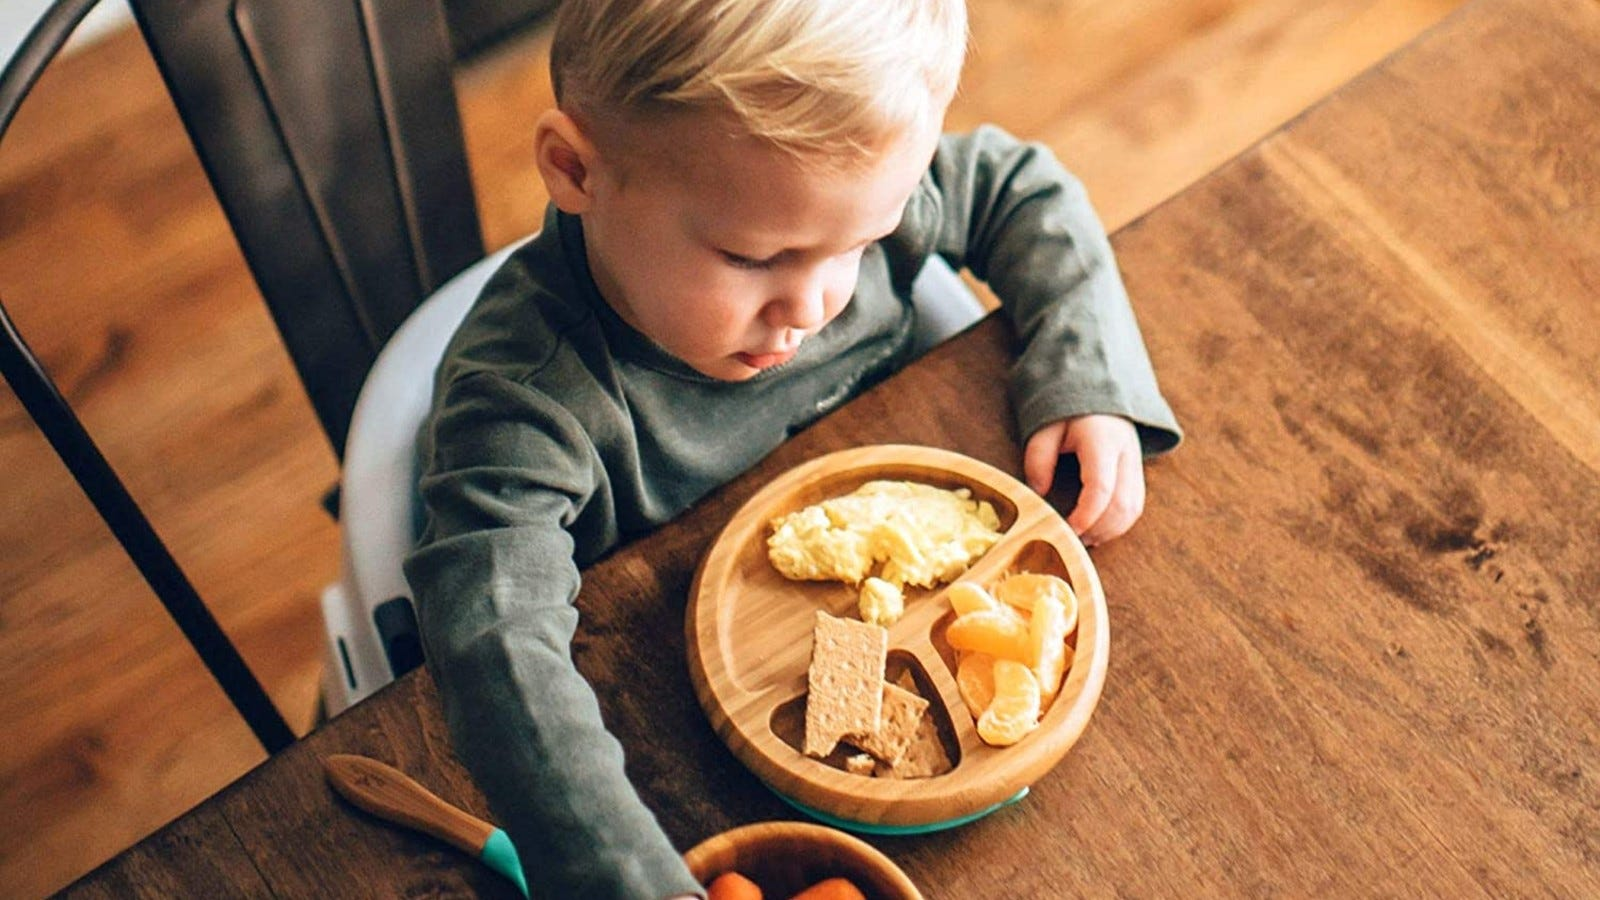 A toddler sitting at a table in front of the Avanchy wooden plate with eggs, orange slices, and graham crackers in each section.